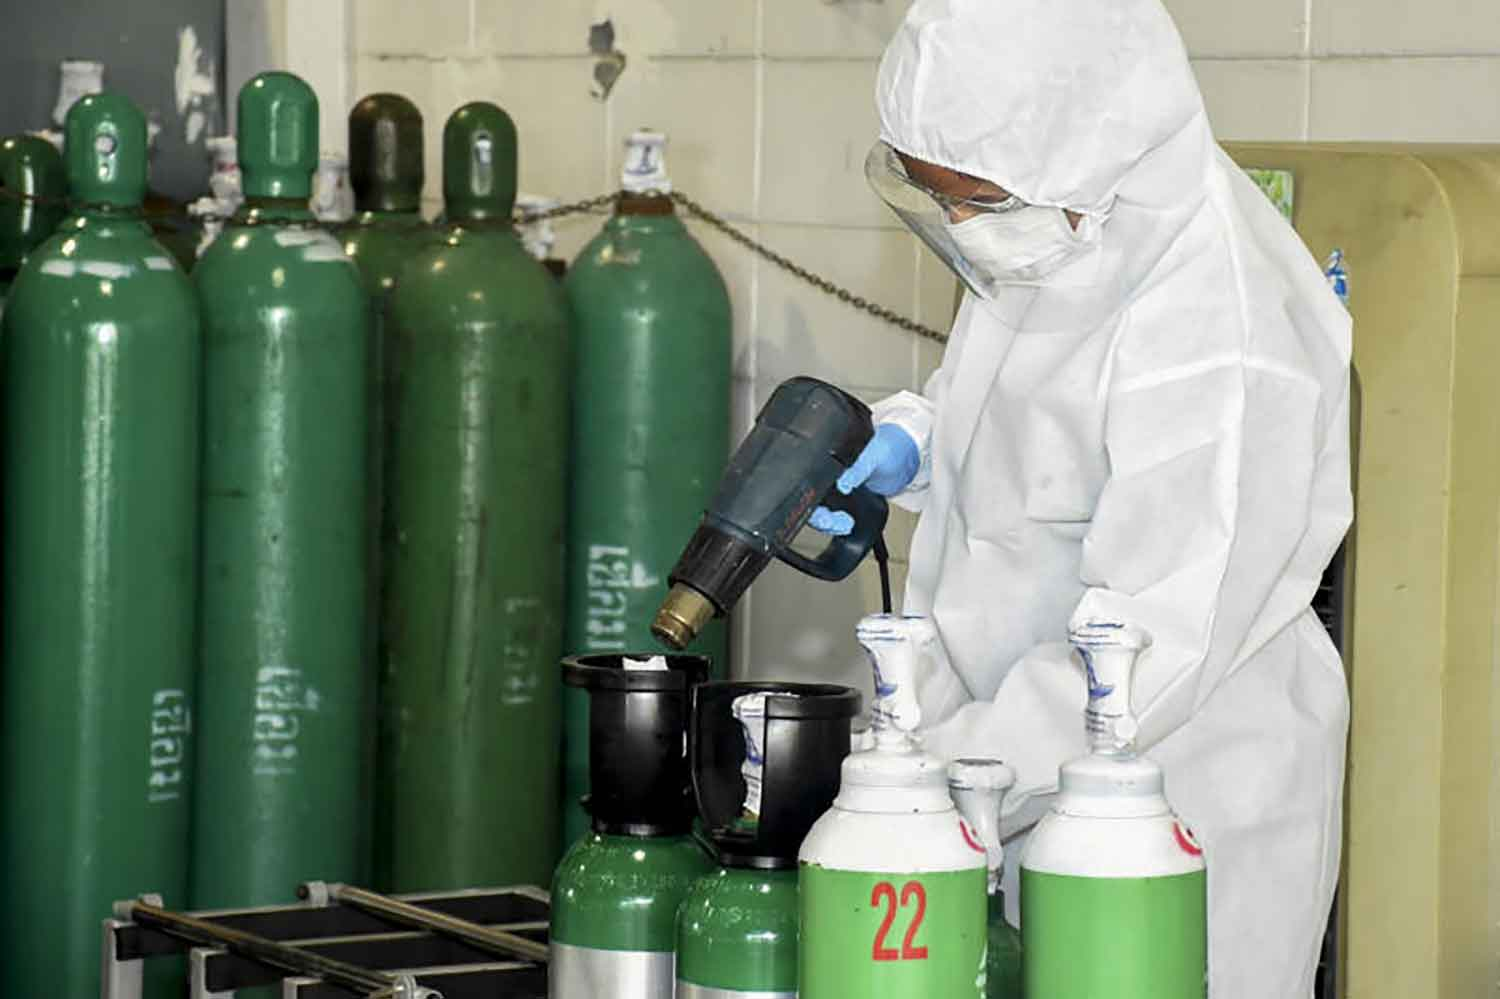 An air force officer prepares cylinders of oxygen to help Covid-19 patients at the Directorate of Aeronautical Engineering in Don Muang district, Bangkok, on Wednesday. (Air force photo)